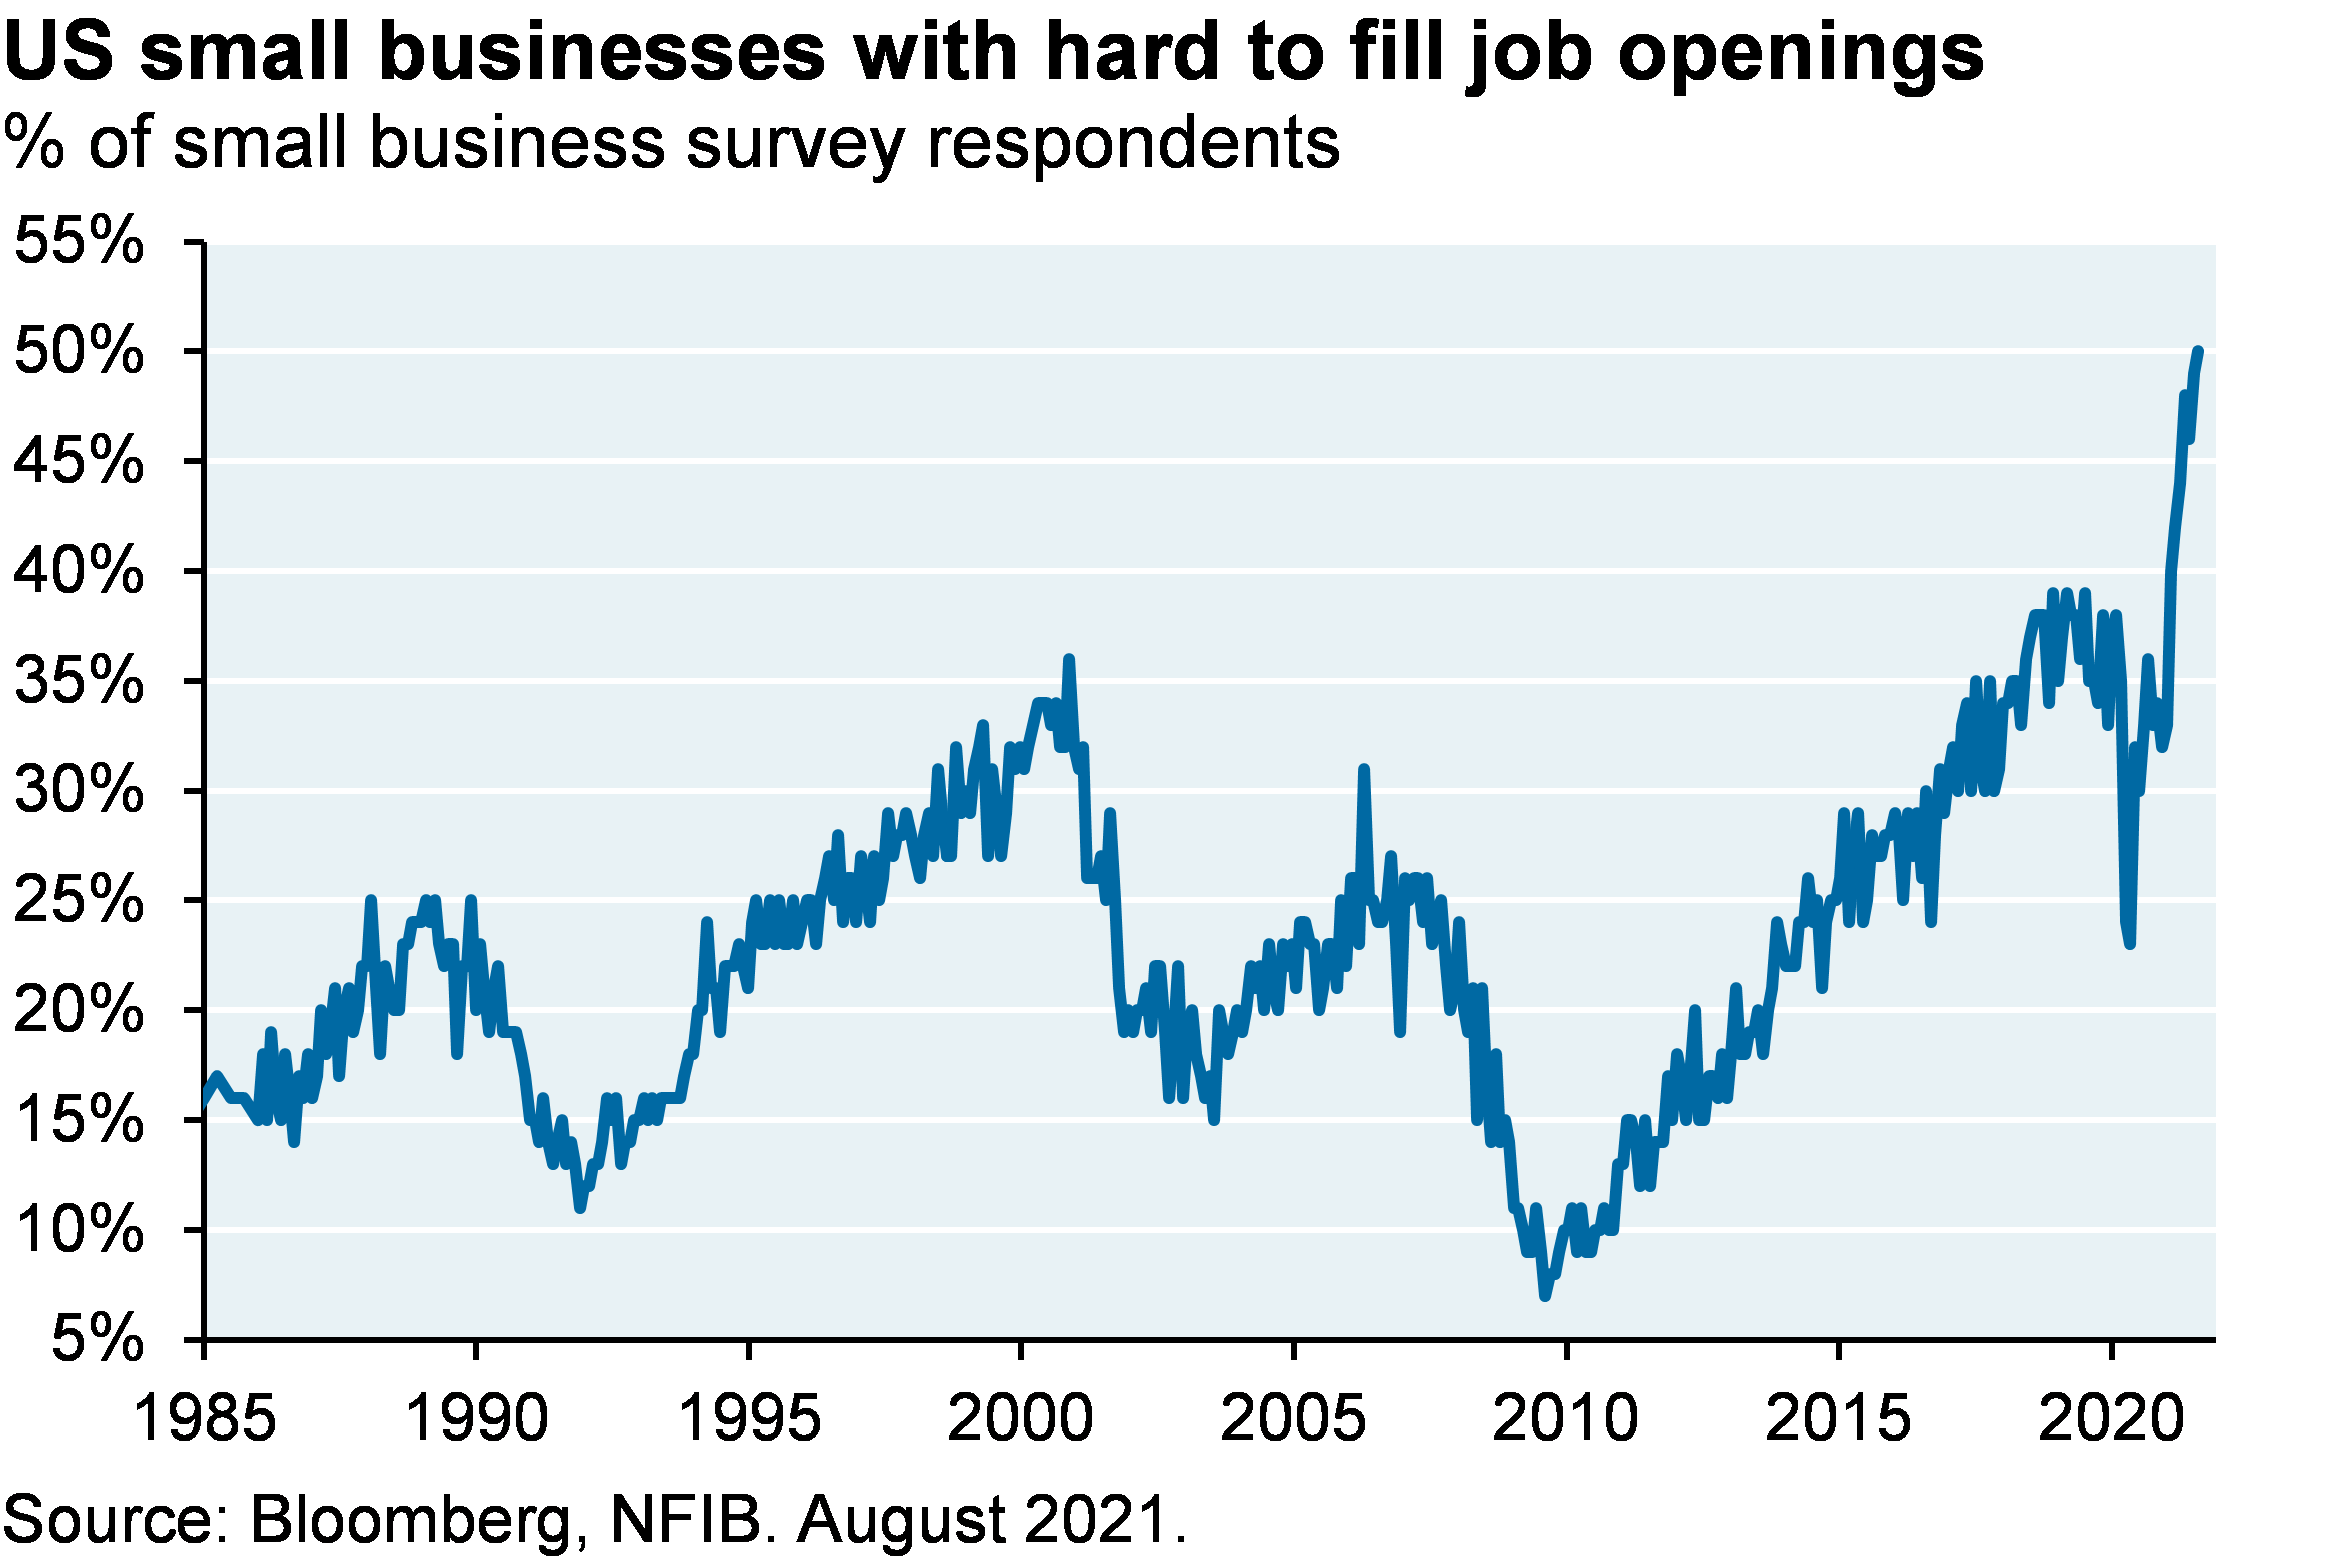 Line chart which should the percent of small businesses with hard to fill job openings. In August, 50% of small business owners said they had job openings they already couldn't fill, the highest level on record